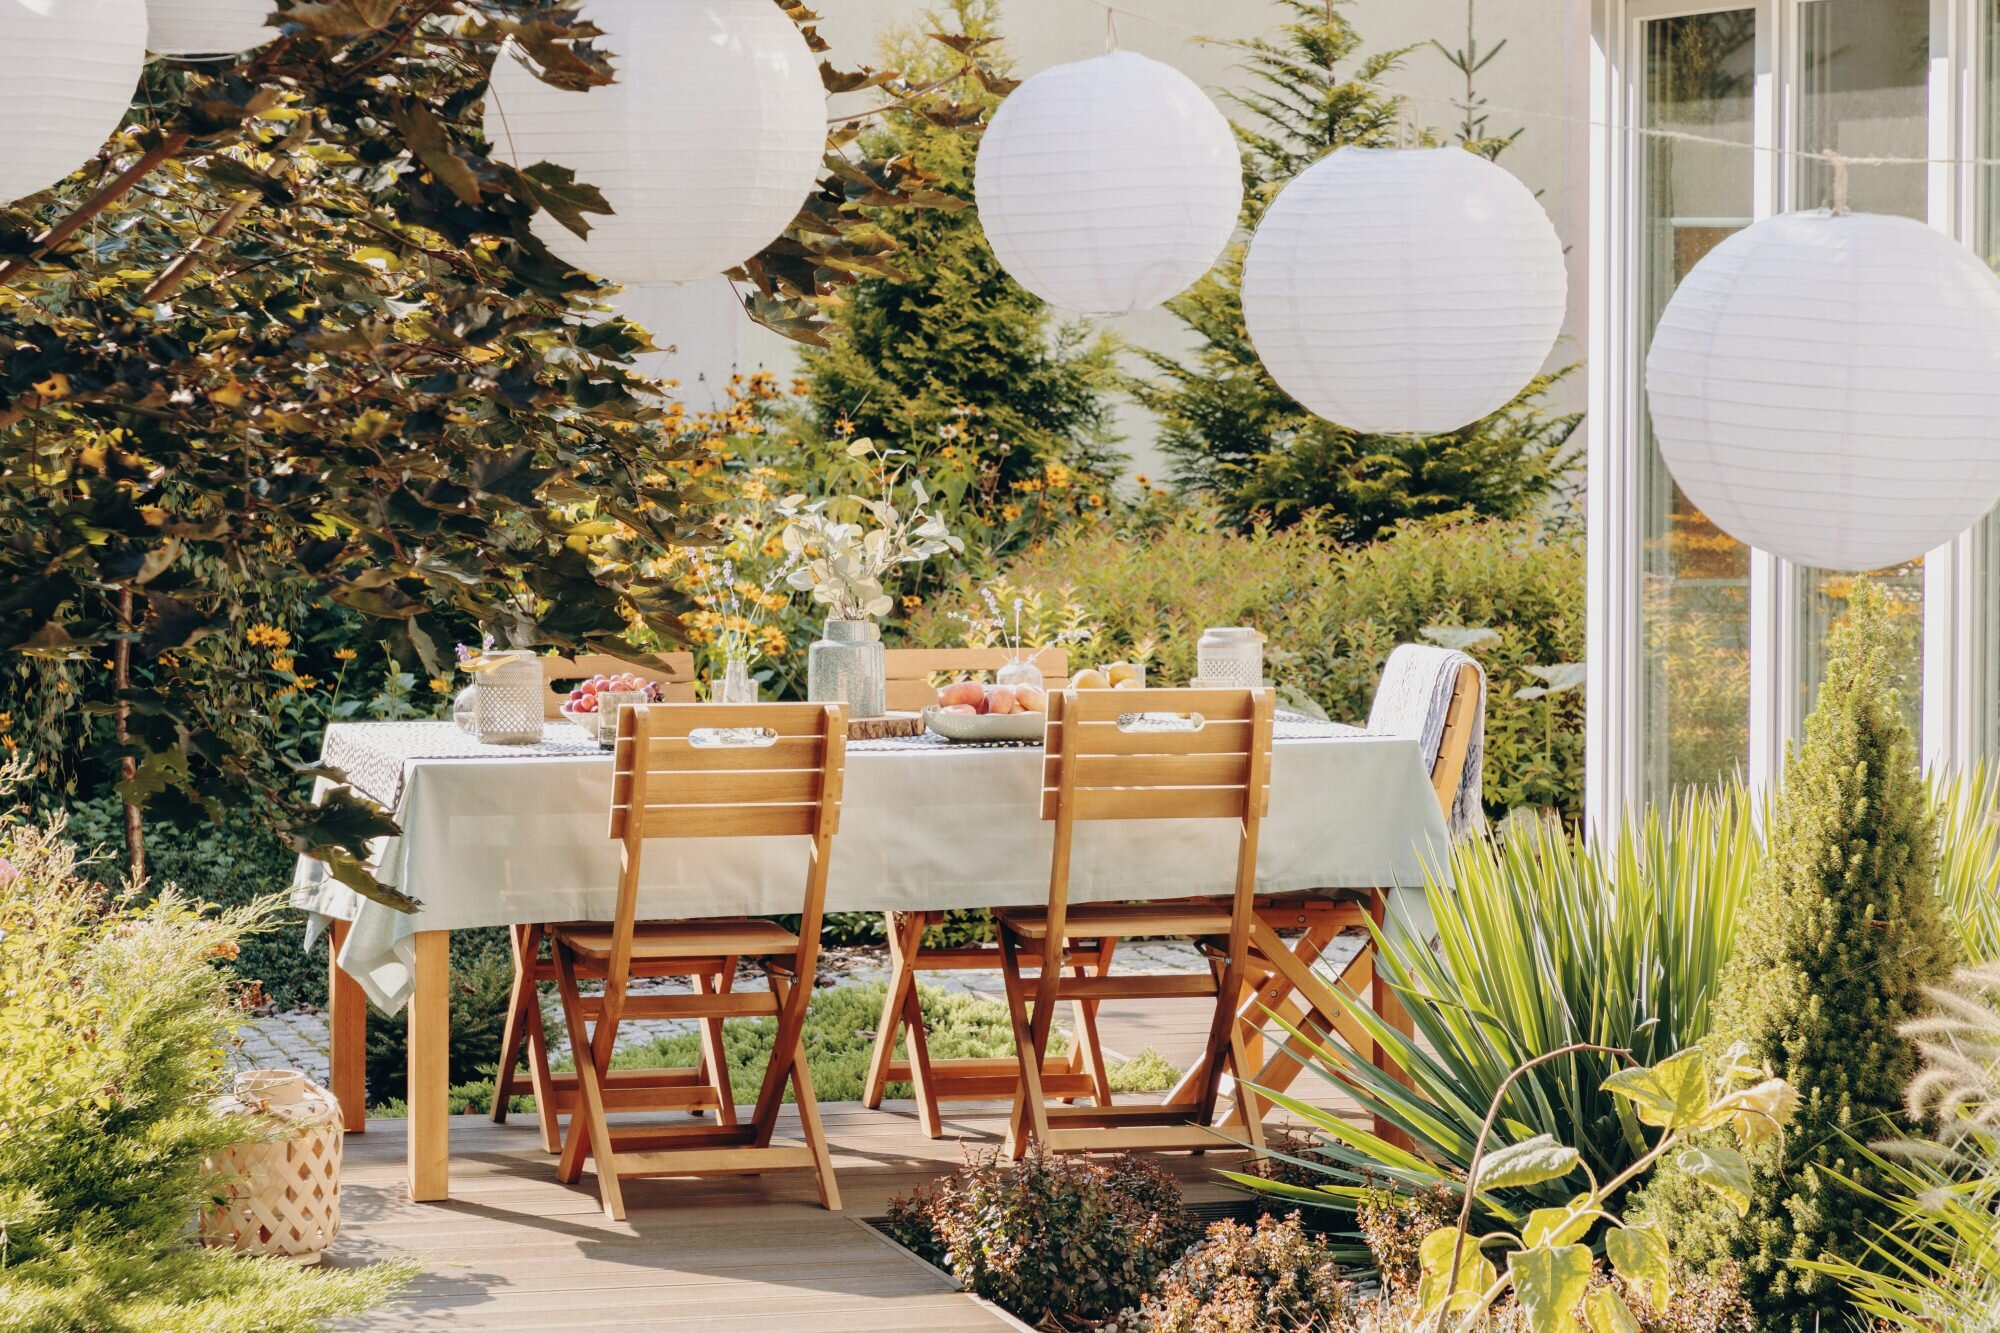 13 Outdoor Party Ideas For An